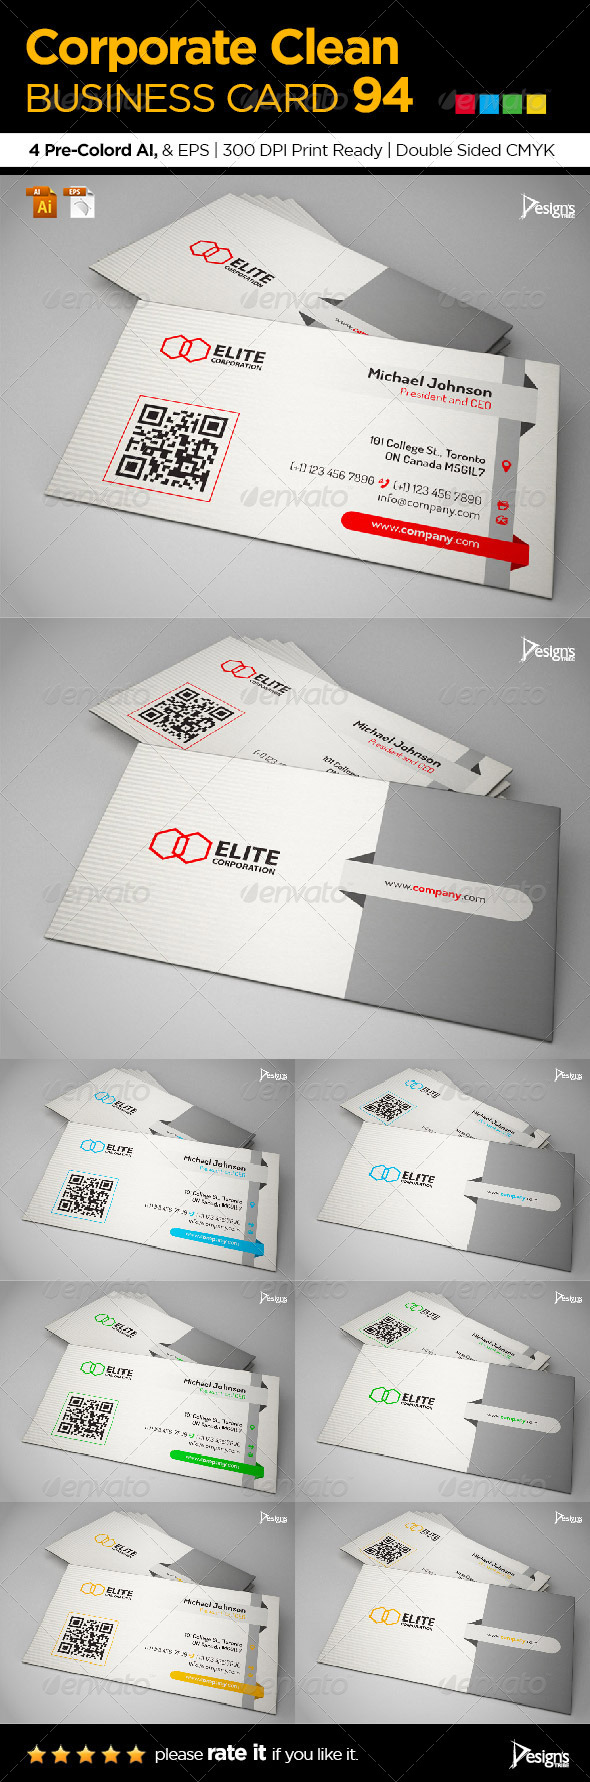 GraphicRiver Corporate Clean Business Card 94 6912671